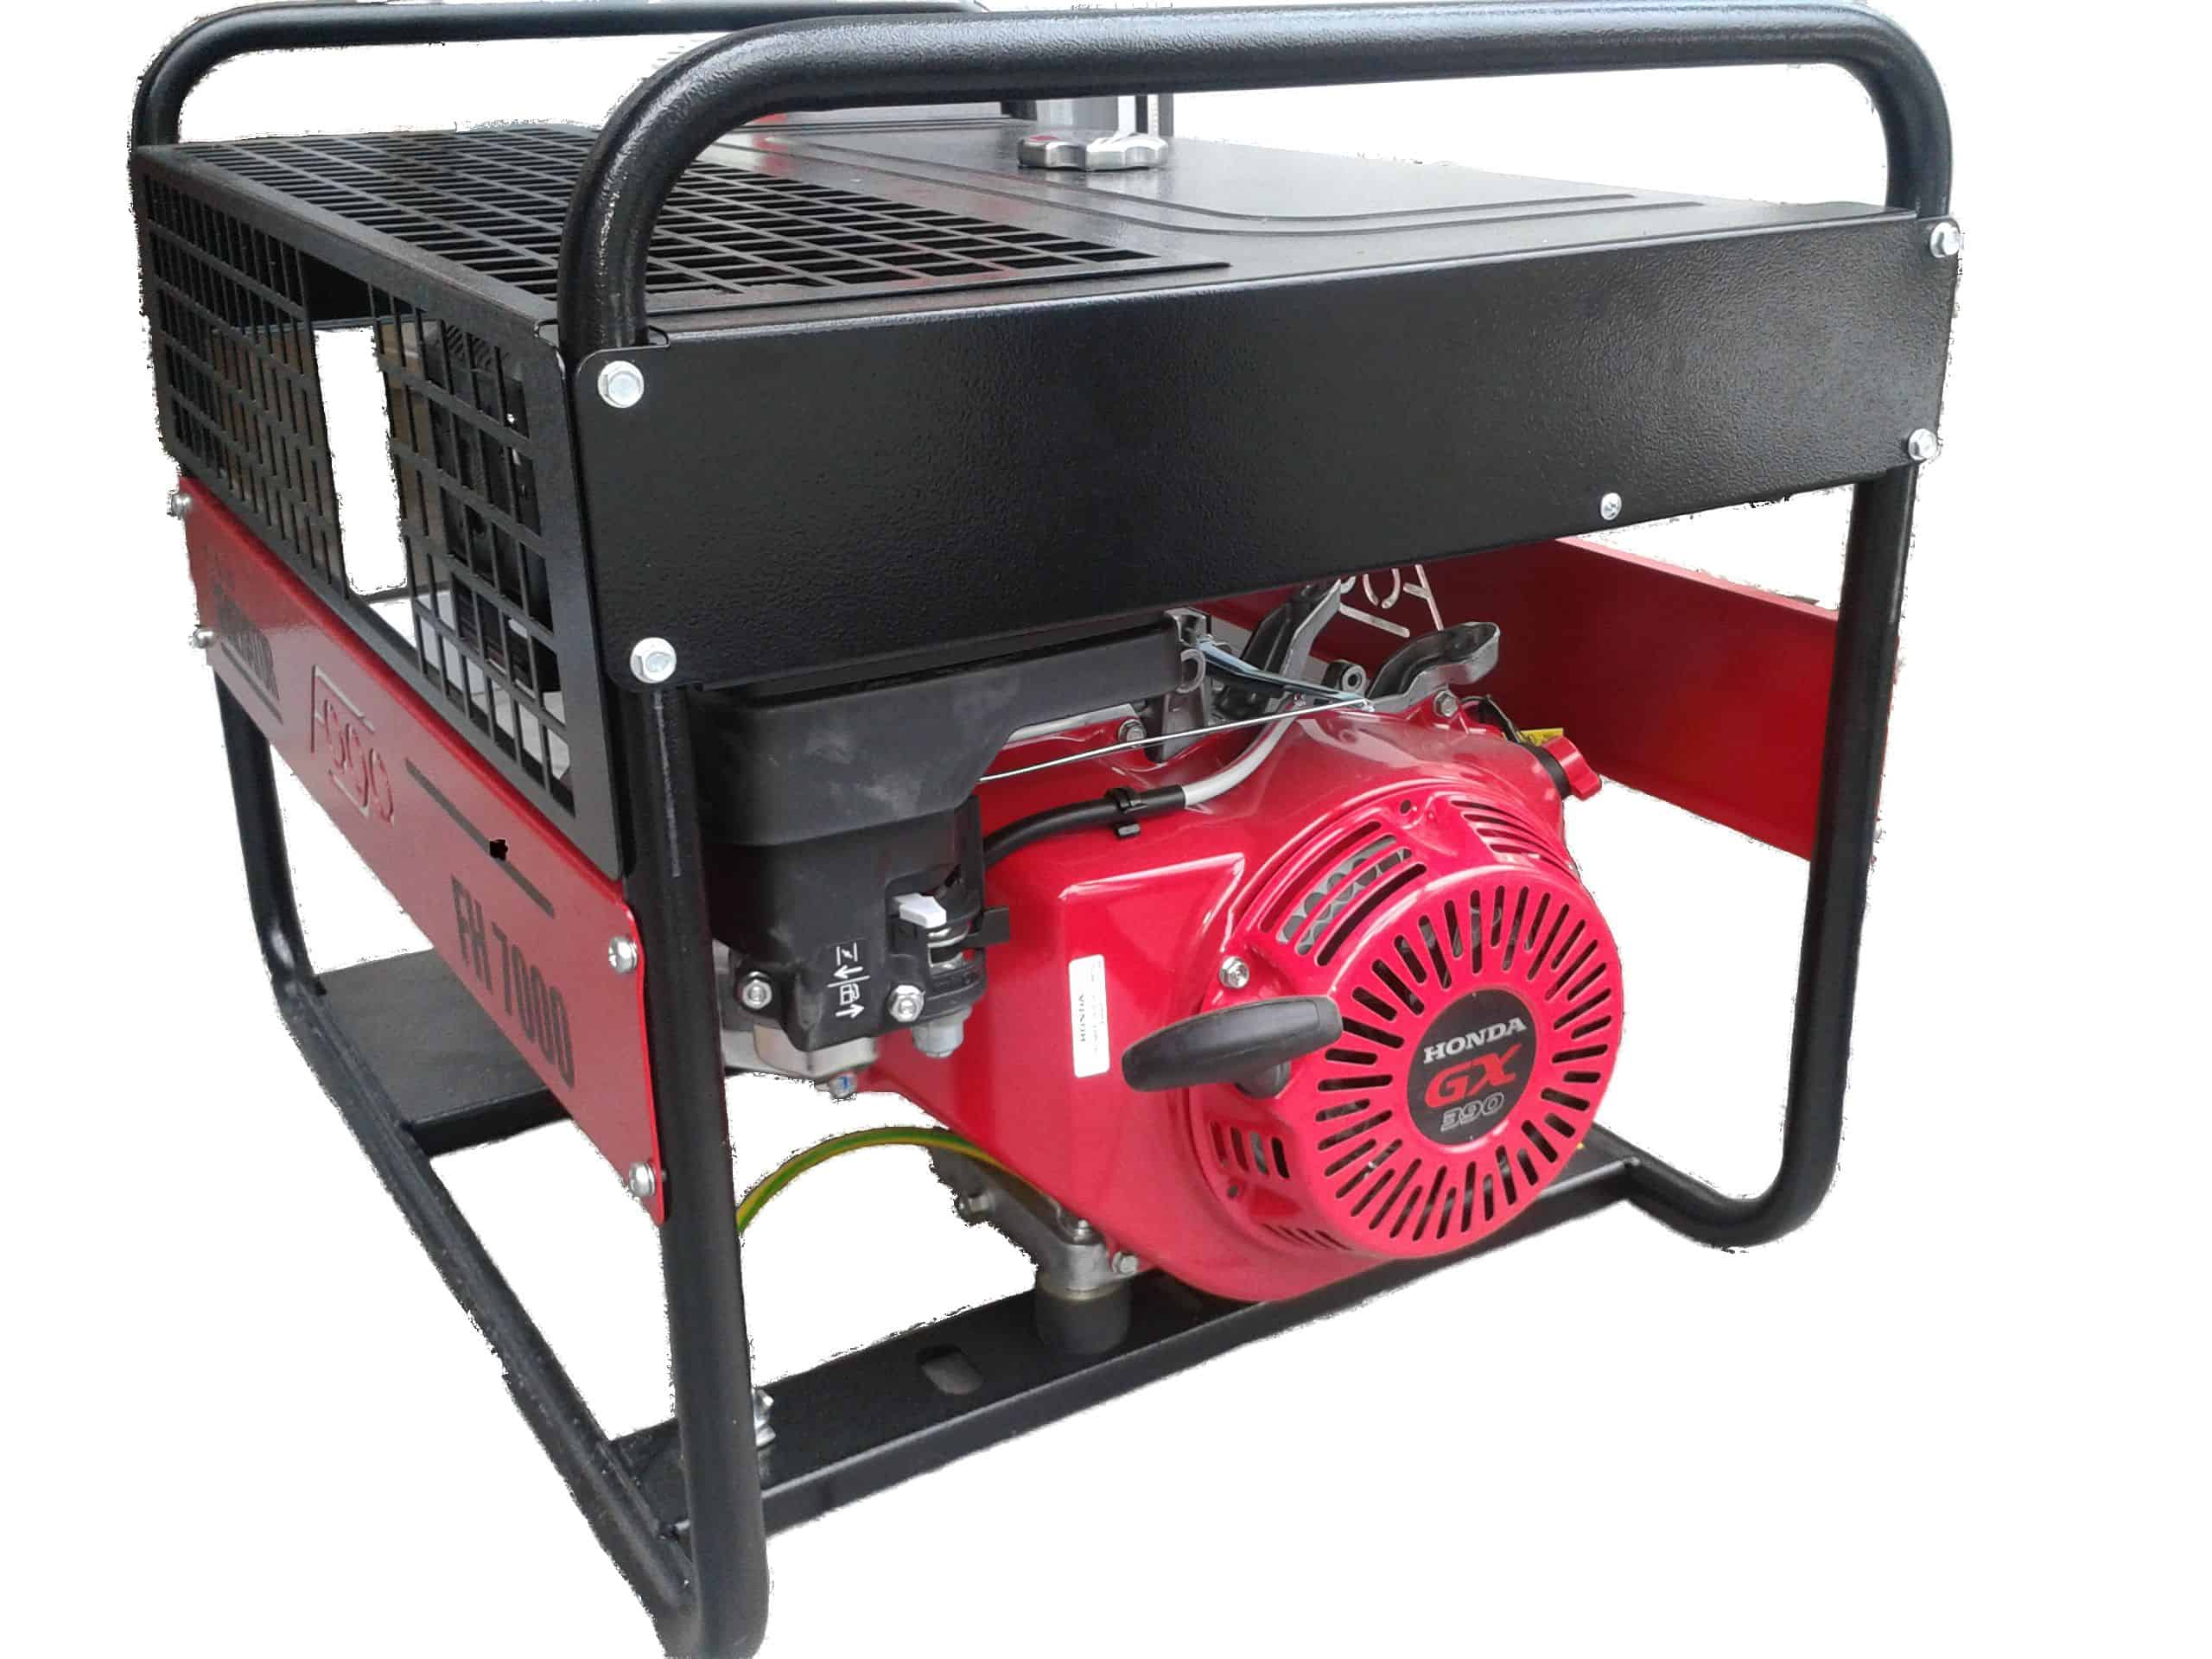 stroke knoxville by environmental exceed four requirements epa all advanced meet engines pumps honda powered generator that industrial agency protection or generators residential are